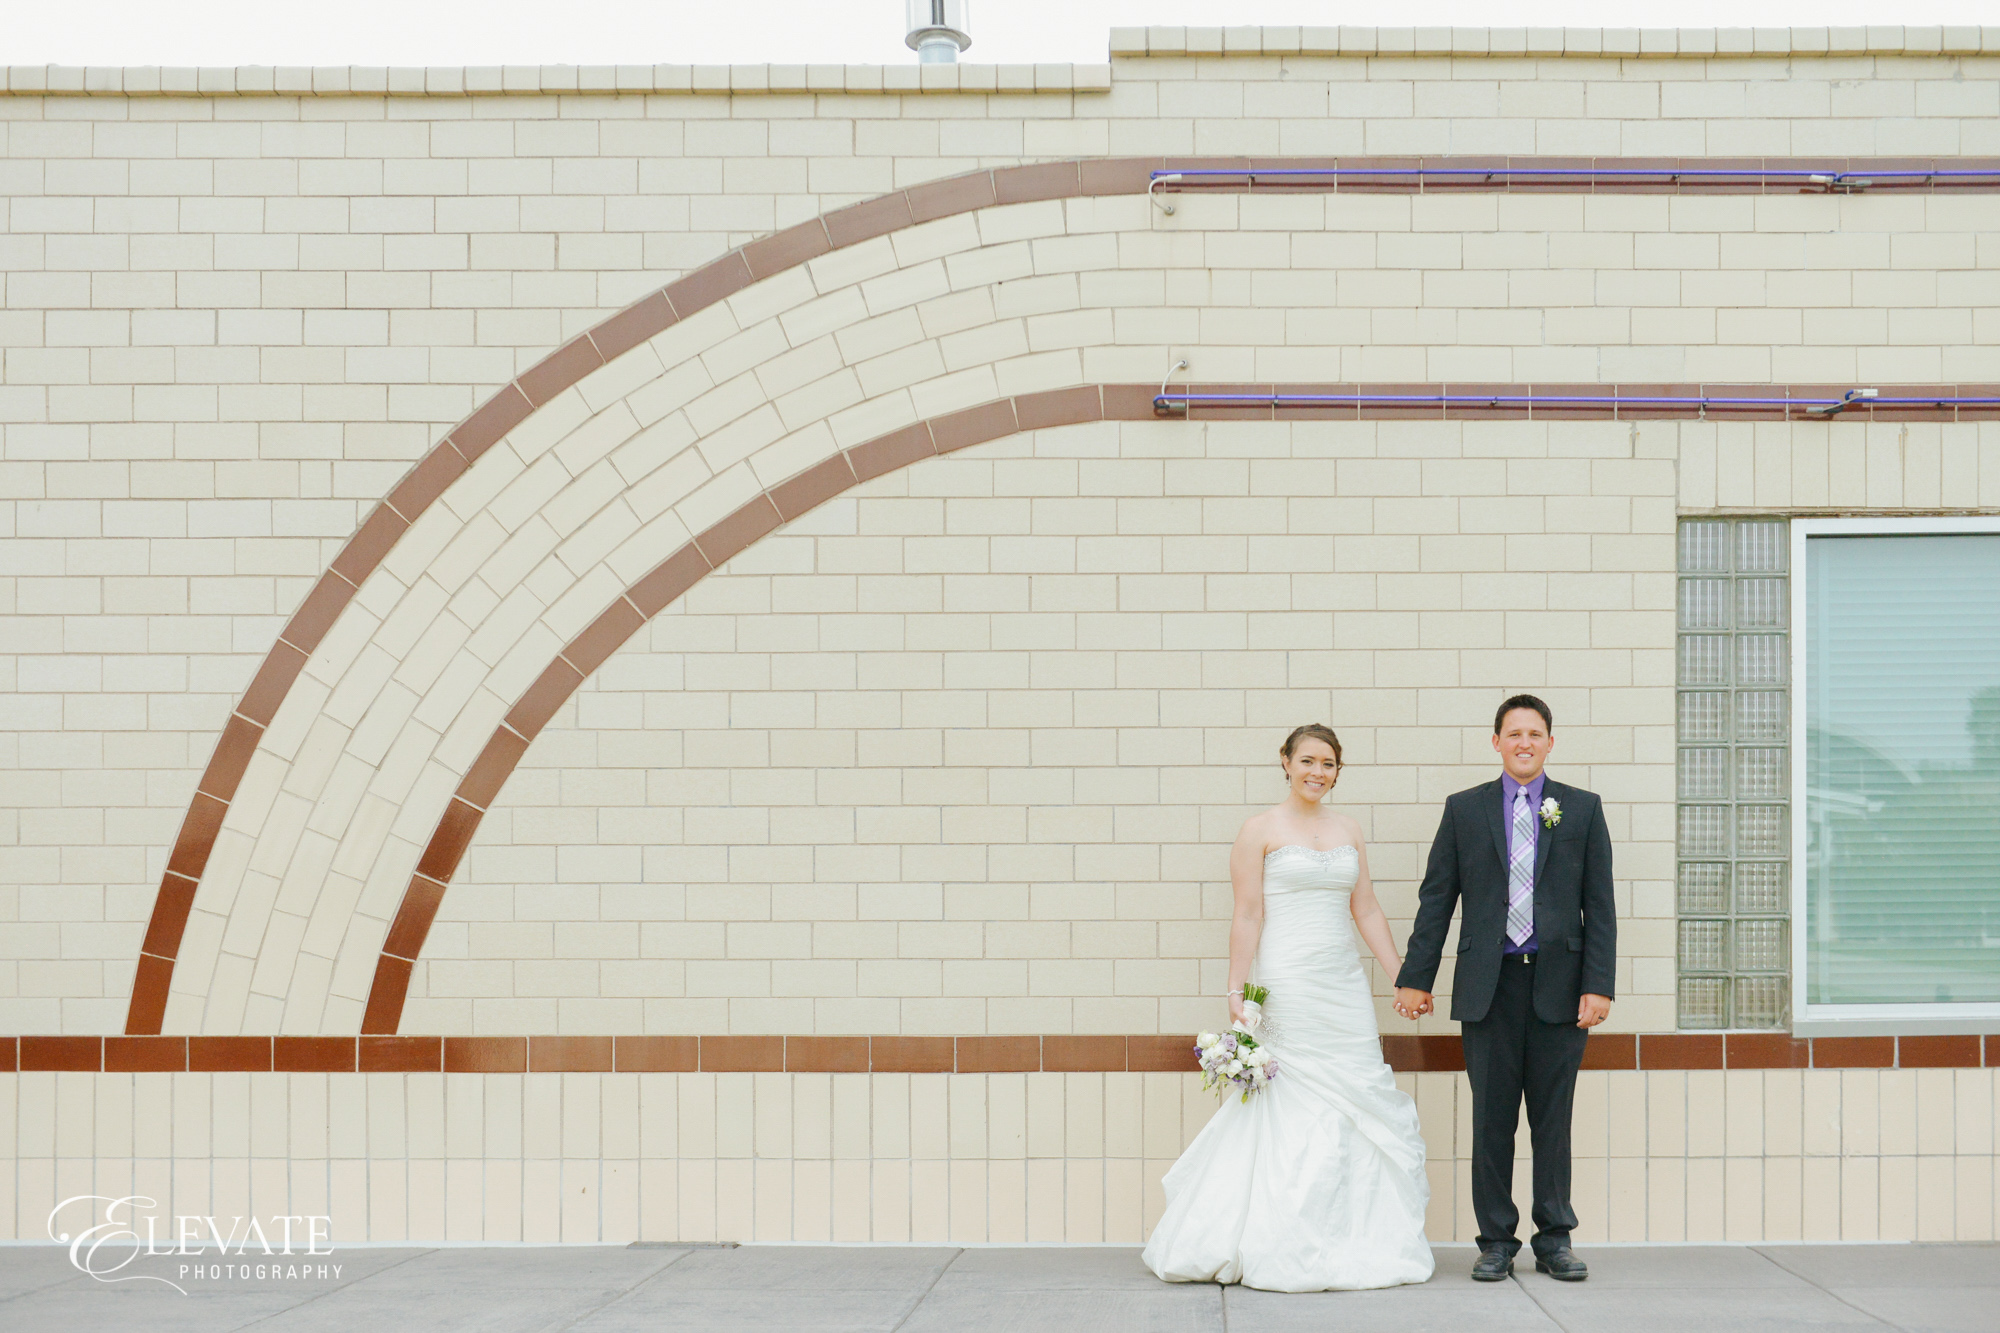 Bride groom historic building